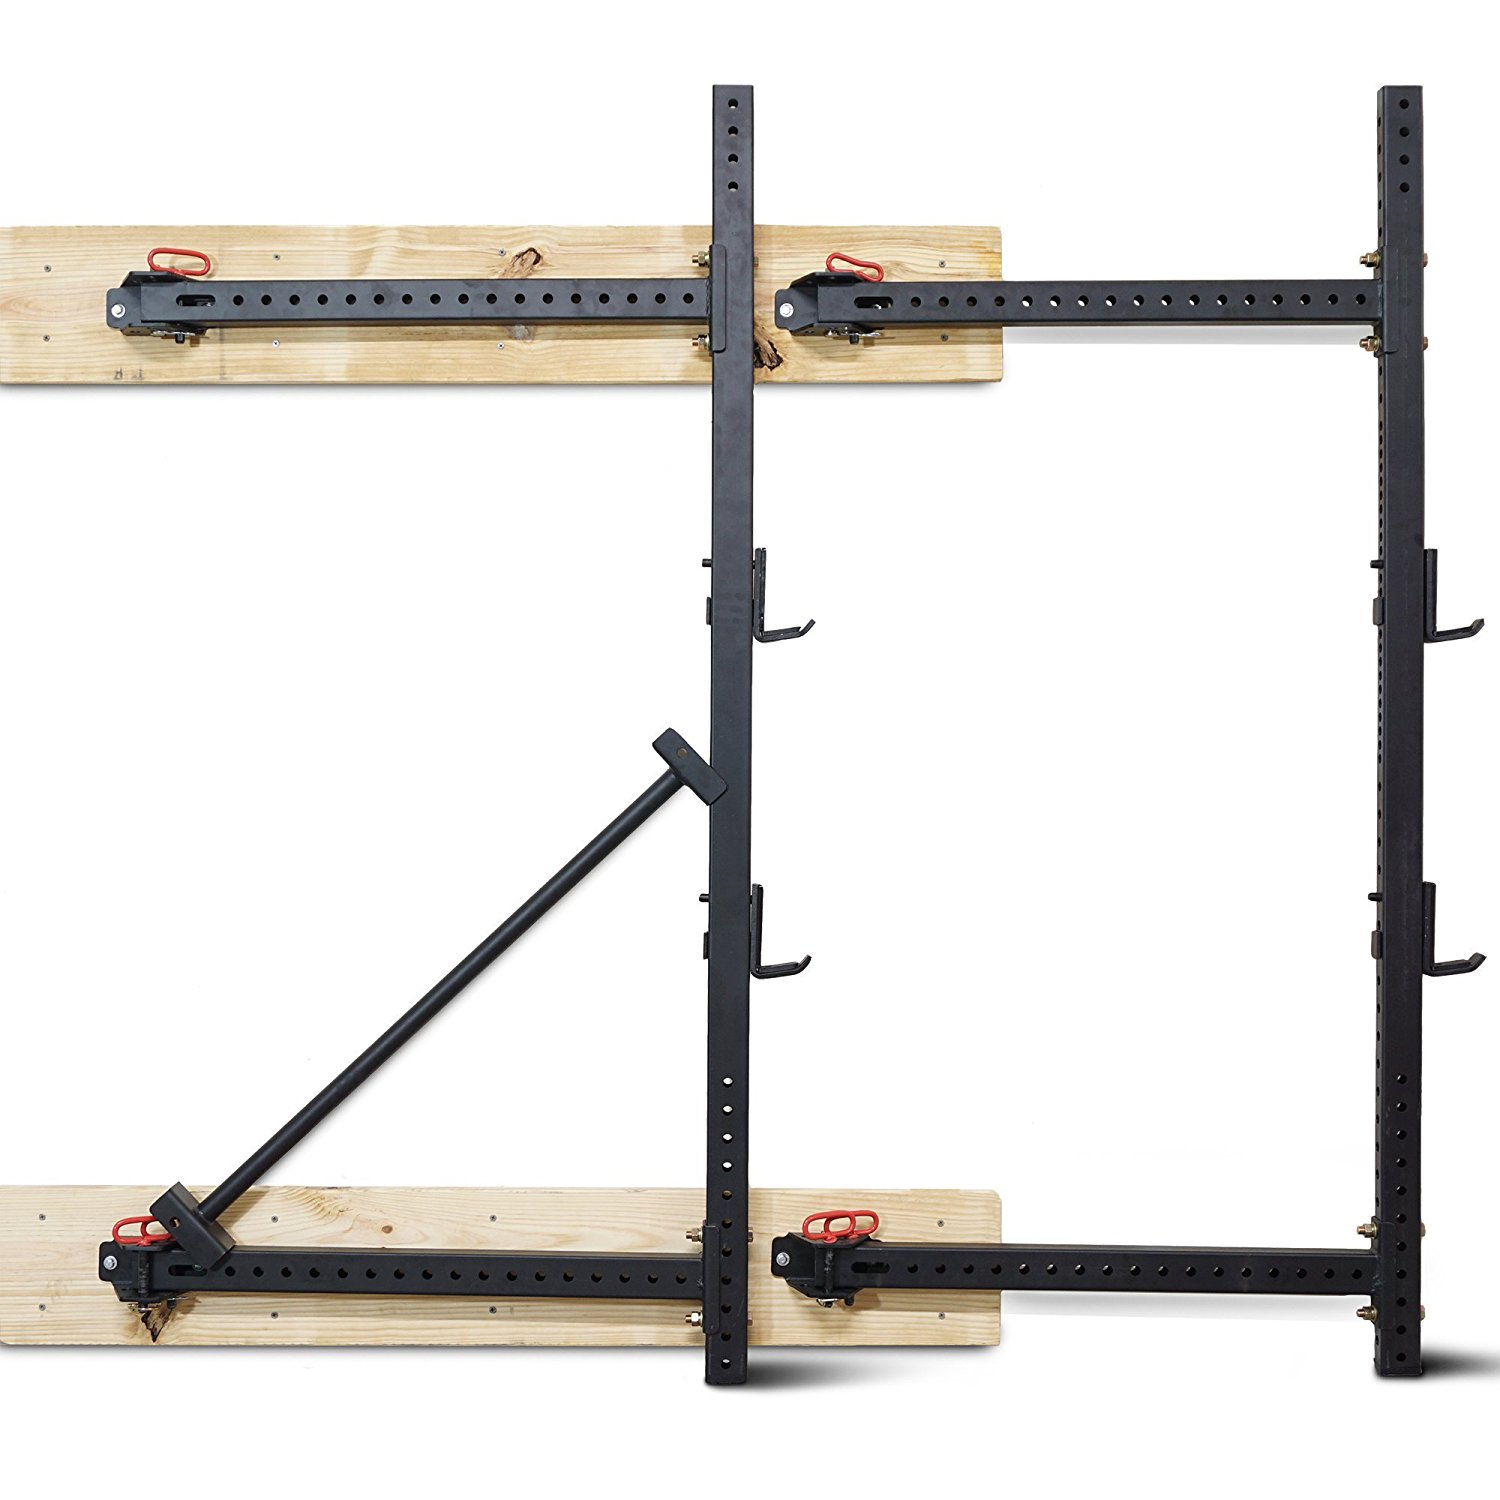 wall t folding the start series other bench pressing space ideal exercises doing deep itm limited anyone fold rack with fitness back and power for creative squats is titan mounted dips